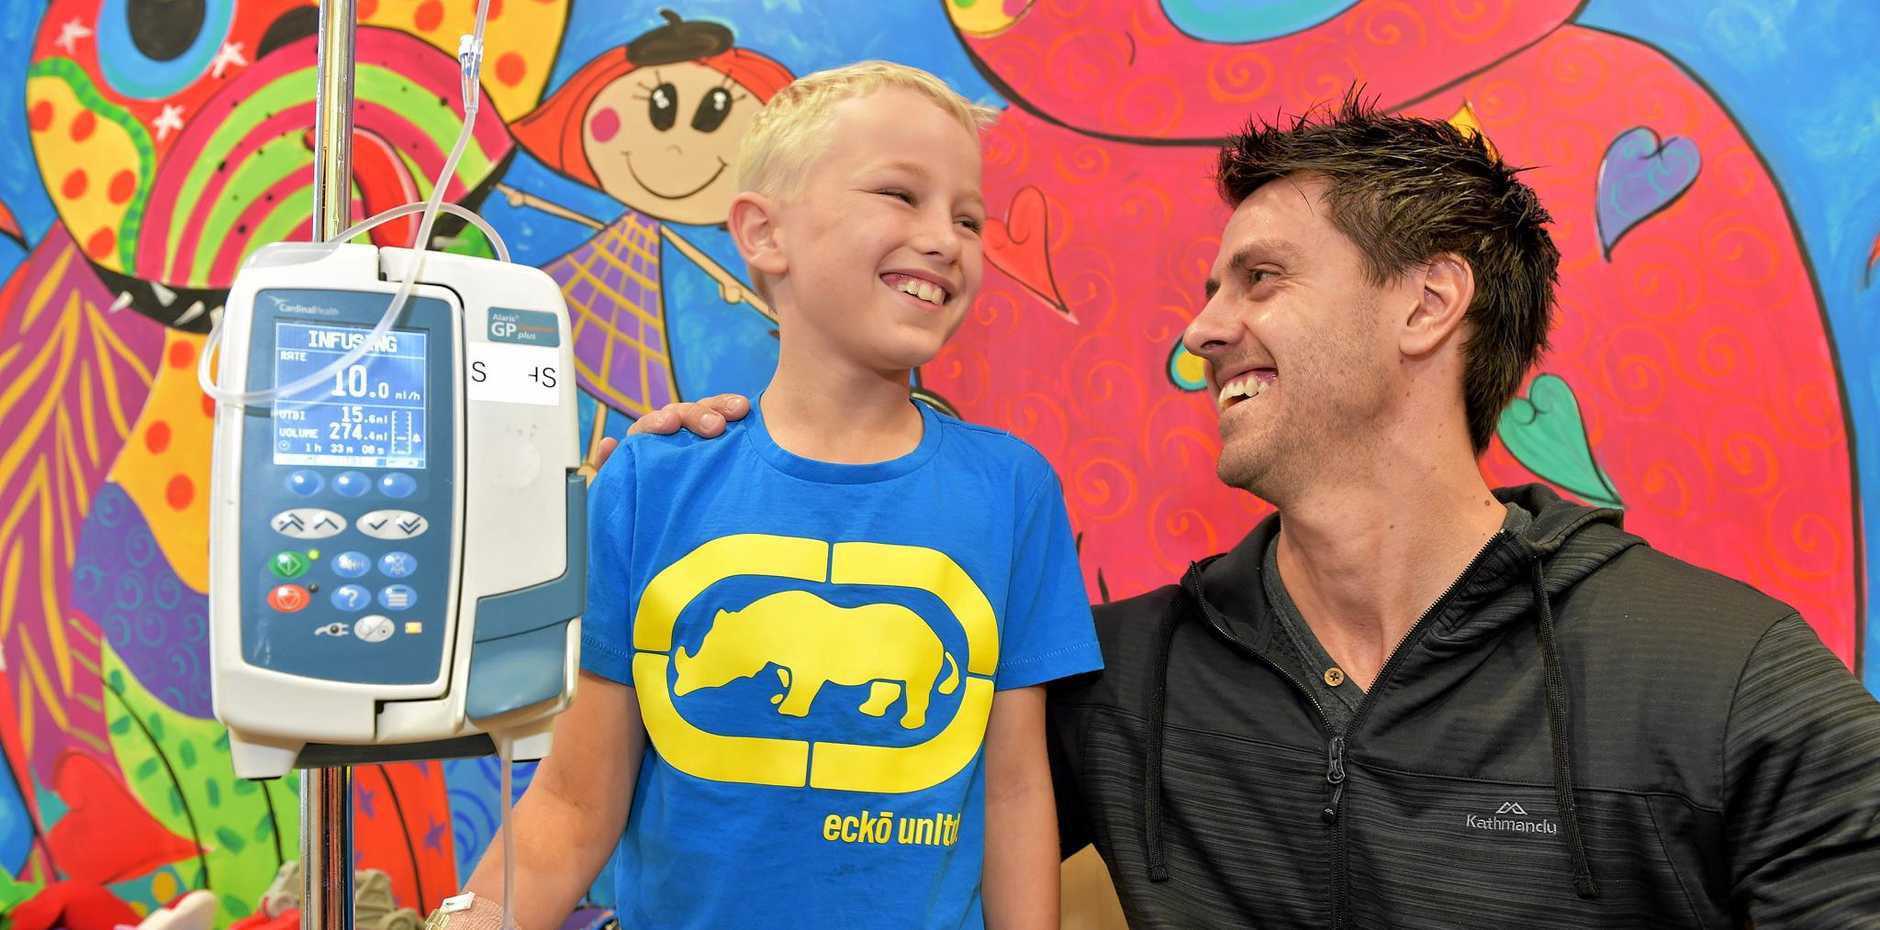 Mt. Kilamanjaro climber Rhys Greedy is raising money for the Children's Ward at Nambour General Hospital. Rhys chats to 10 year old Brodie Tedeschi in the playroom at the Children's Ward at Nambour General Hospital.